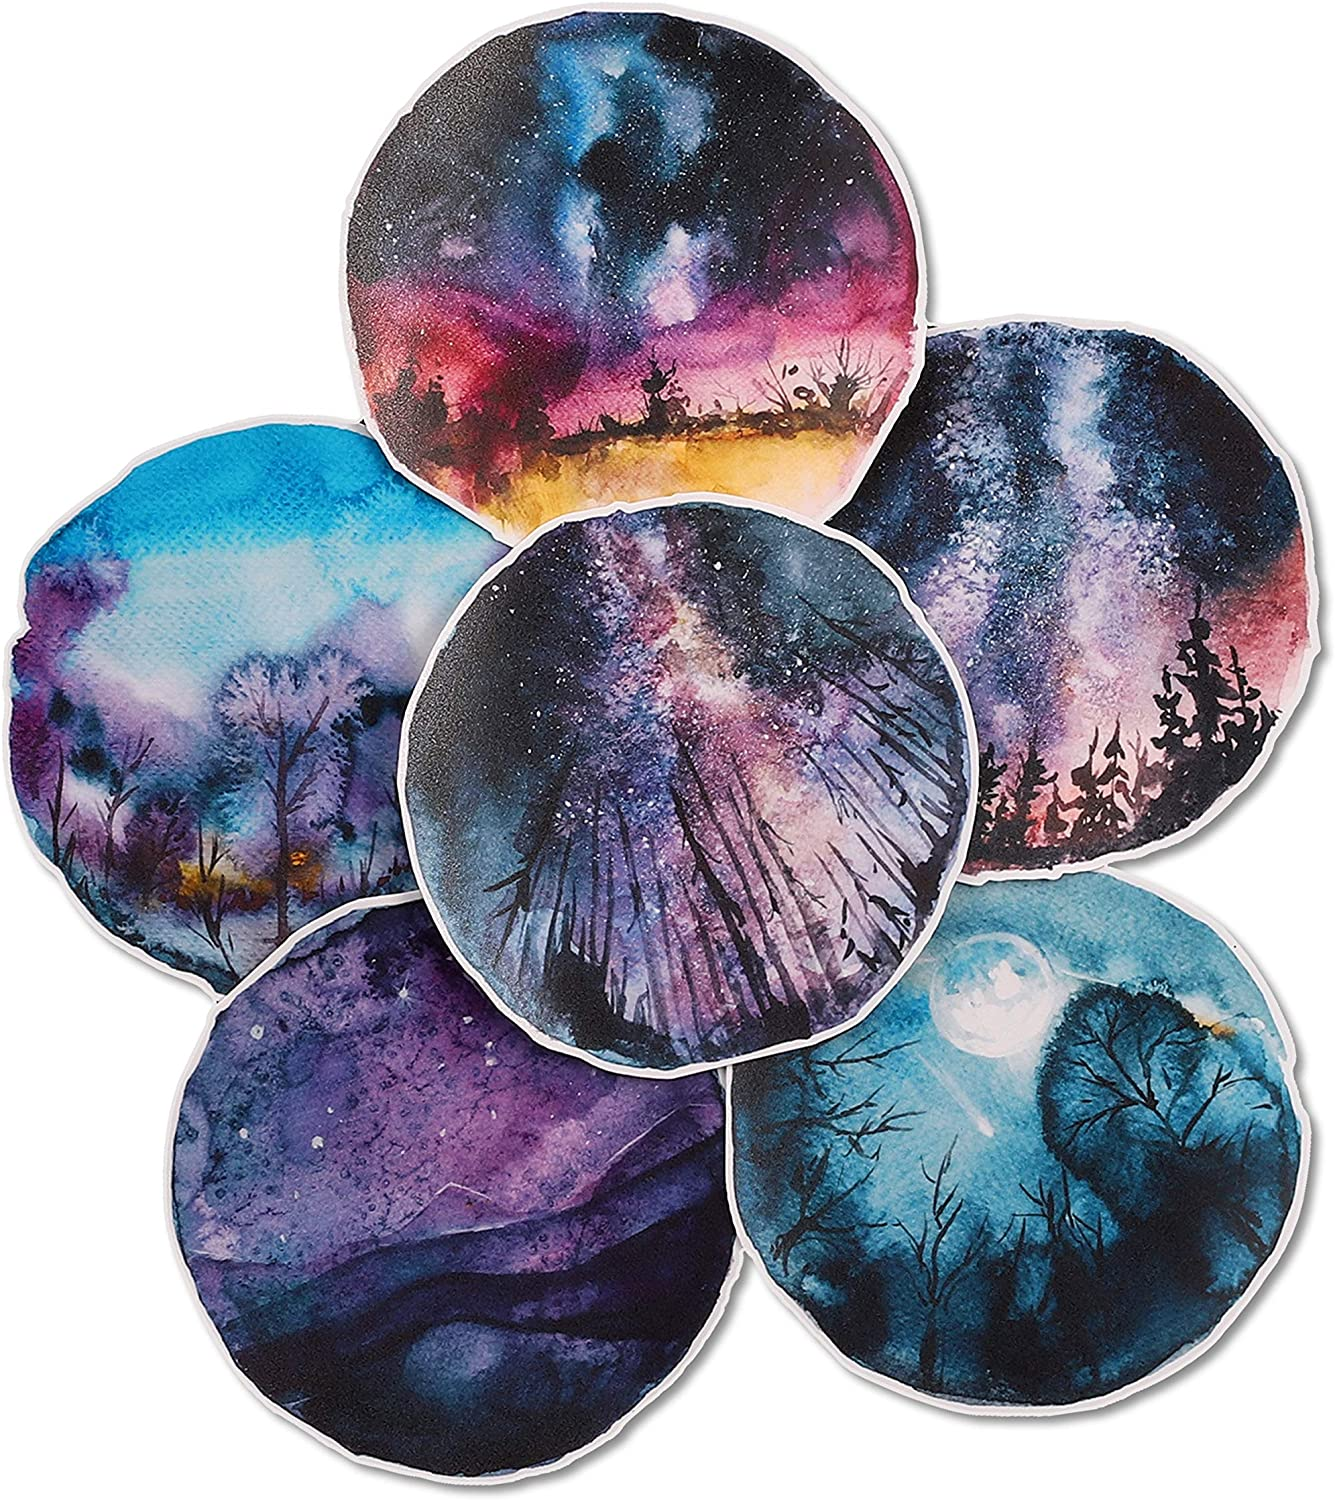 Navy Peony Starry Night Sky Stickers (6 Pack) - Big, Cute, Waterproof and Durable | Artsy Constellation Decals for Water Bottles, Laptops, Scrapbook